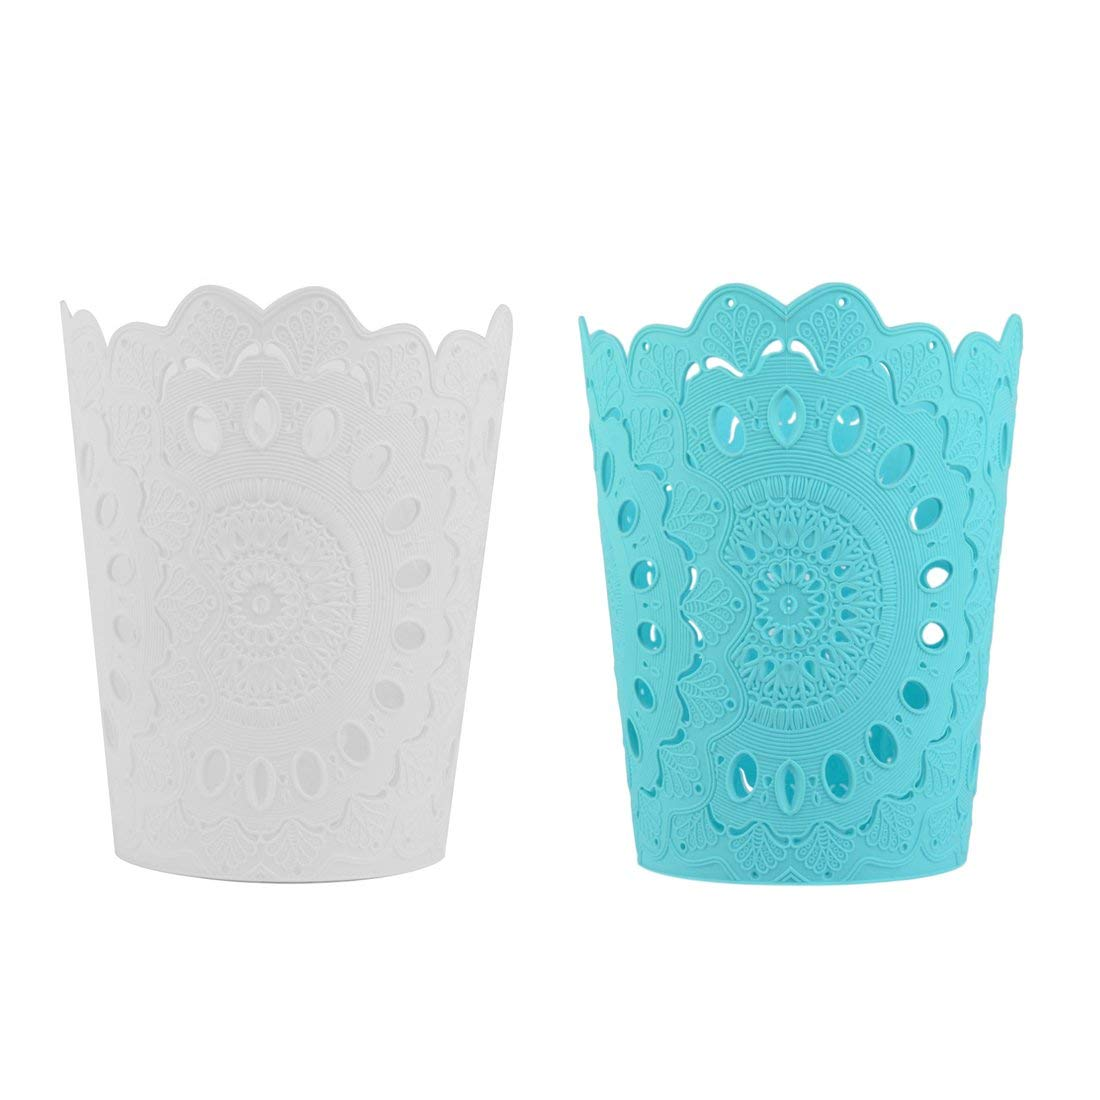 XSHION Waste Paper Basket, 2 Pack Plastic Garbage Can Small Bathroom Wastebasket Without Lid Hollow Flower Trash Can 7.8 X 5.7 X 9.4 Inch